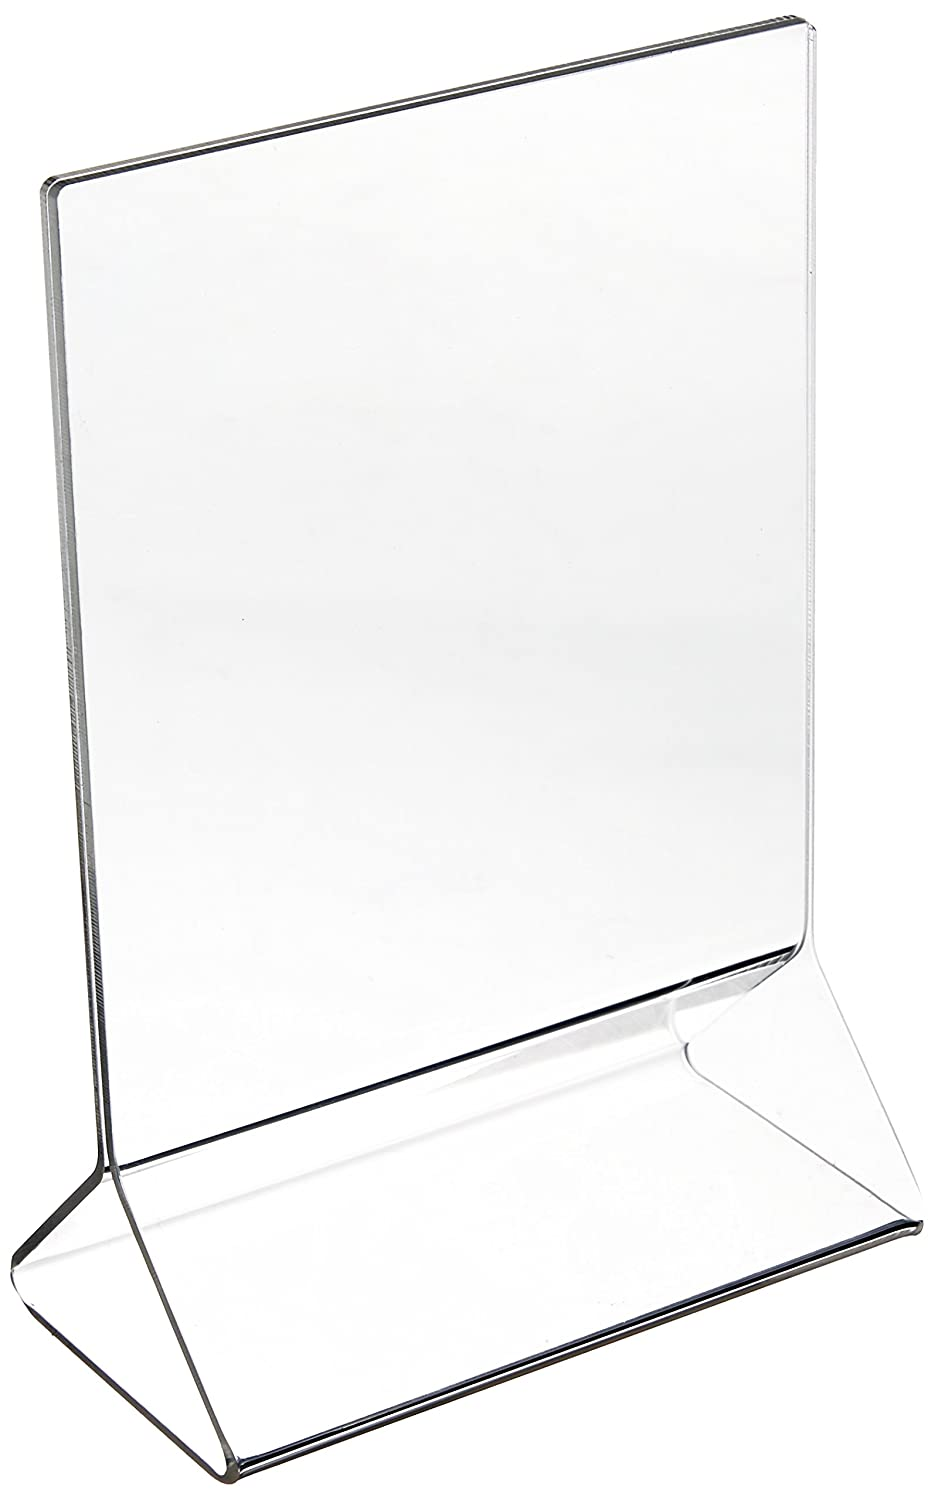 New Star Foodservice 22940 Acrylic Table Menu Card Holder, 4 by 6-Inch, Clear, Set of 12